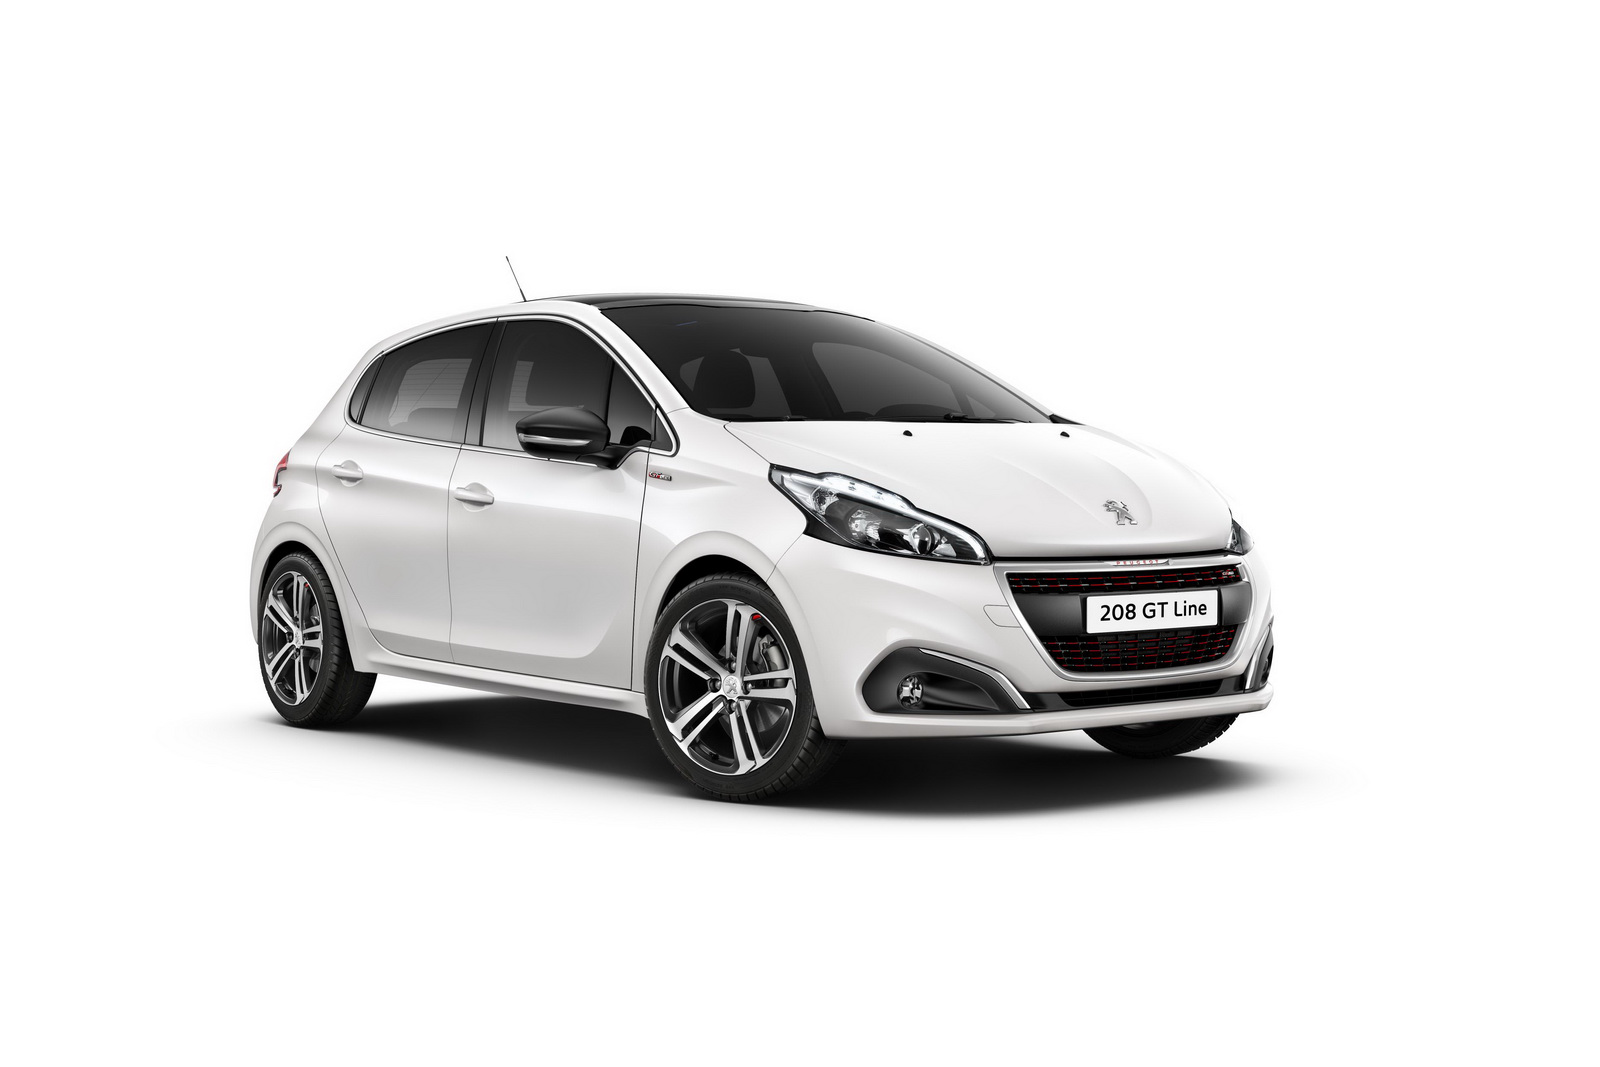 2016 peugeot 208 pricing and specifications more models sharper entry price photos 1 of 4. Black Bedroom Furniture Sets. Home Design Ideas